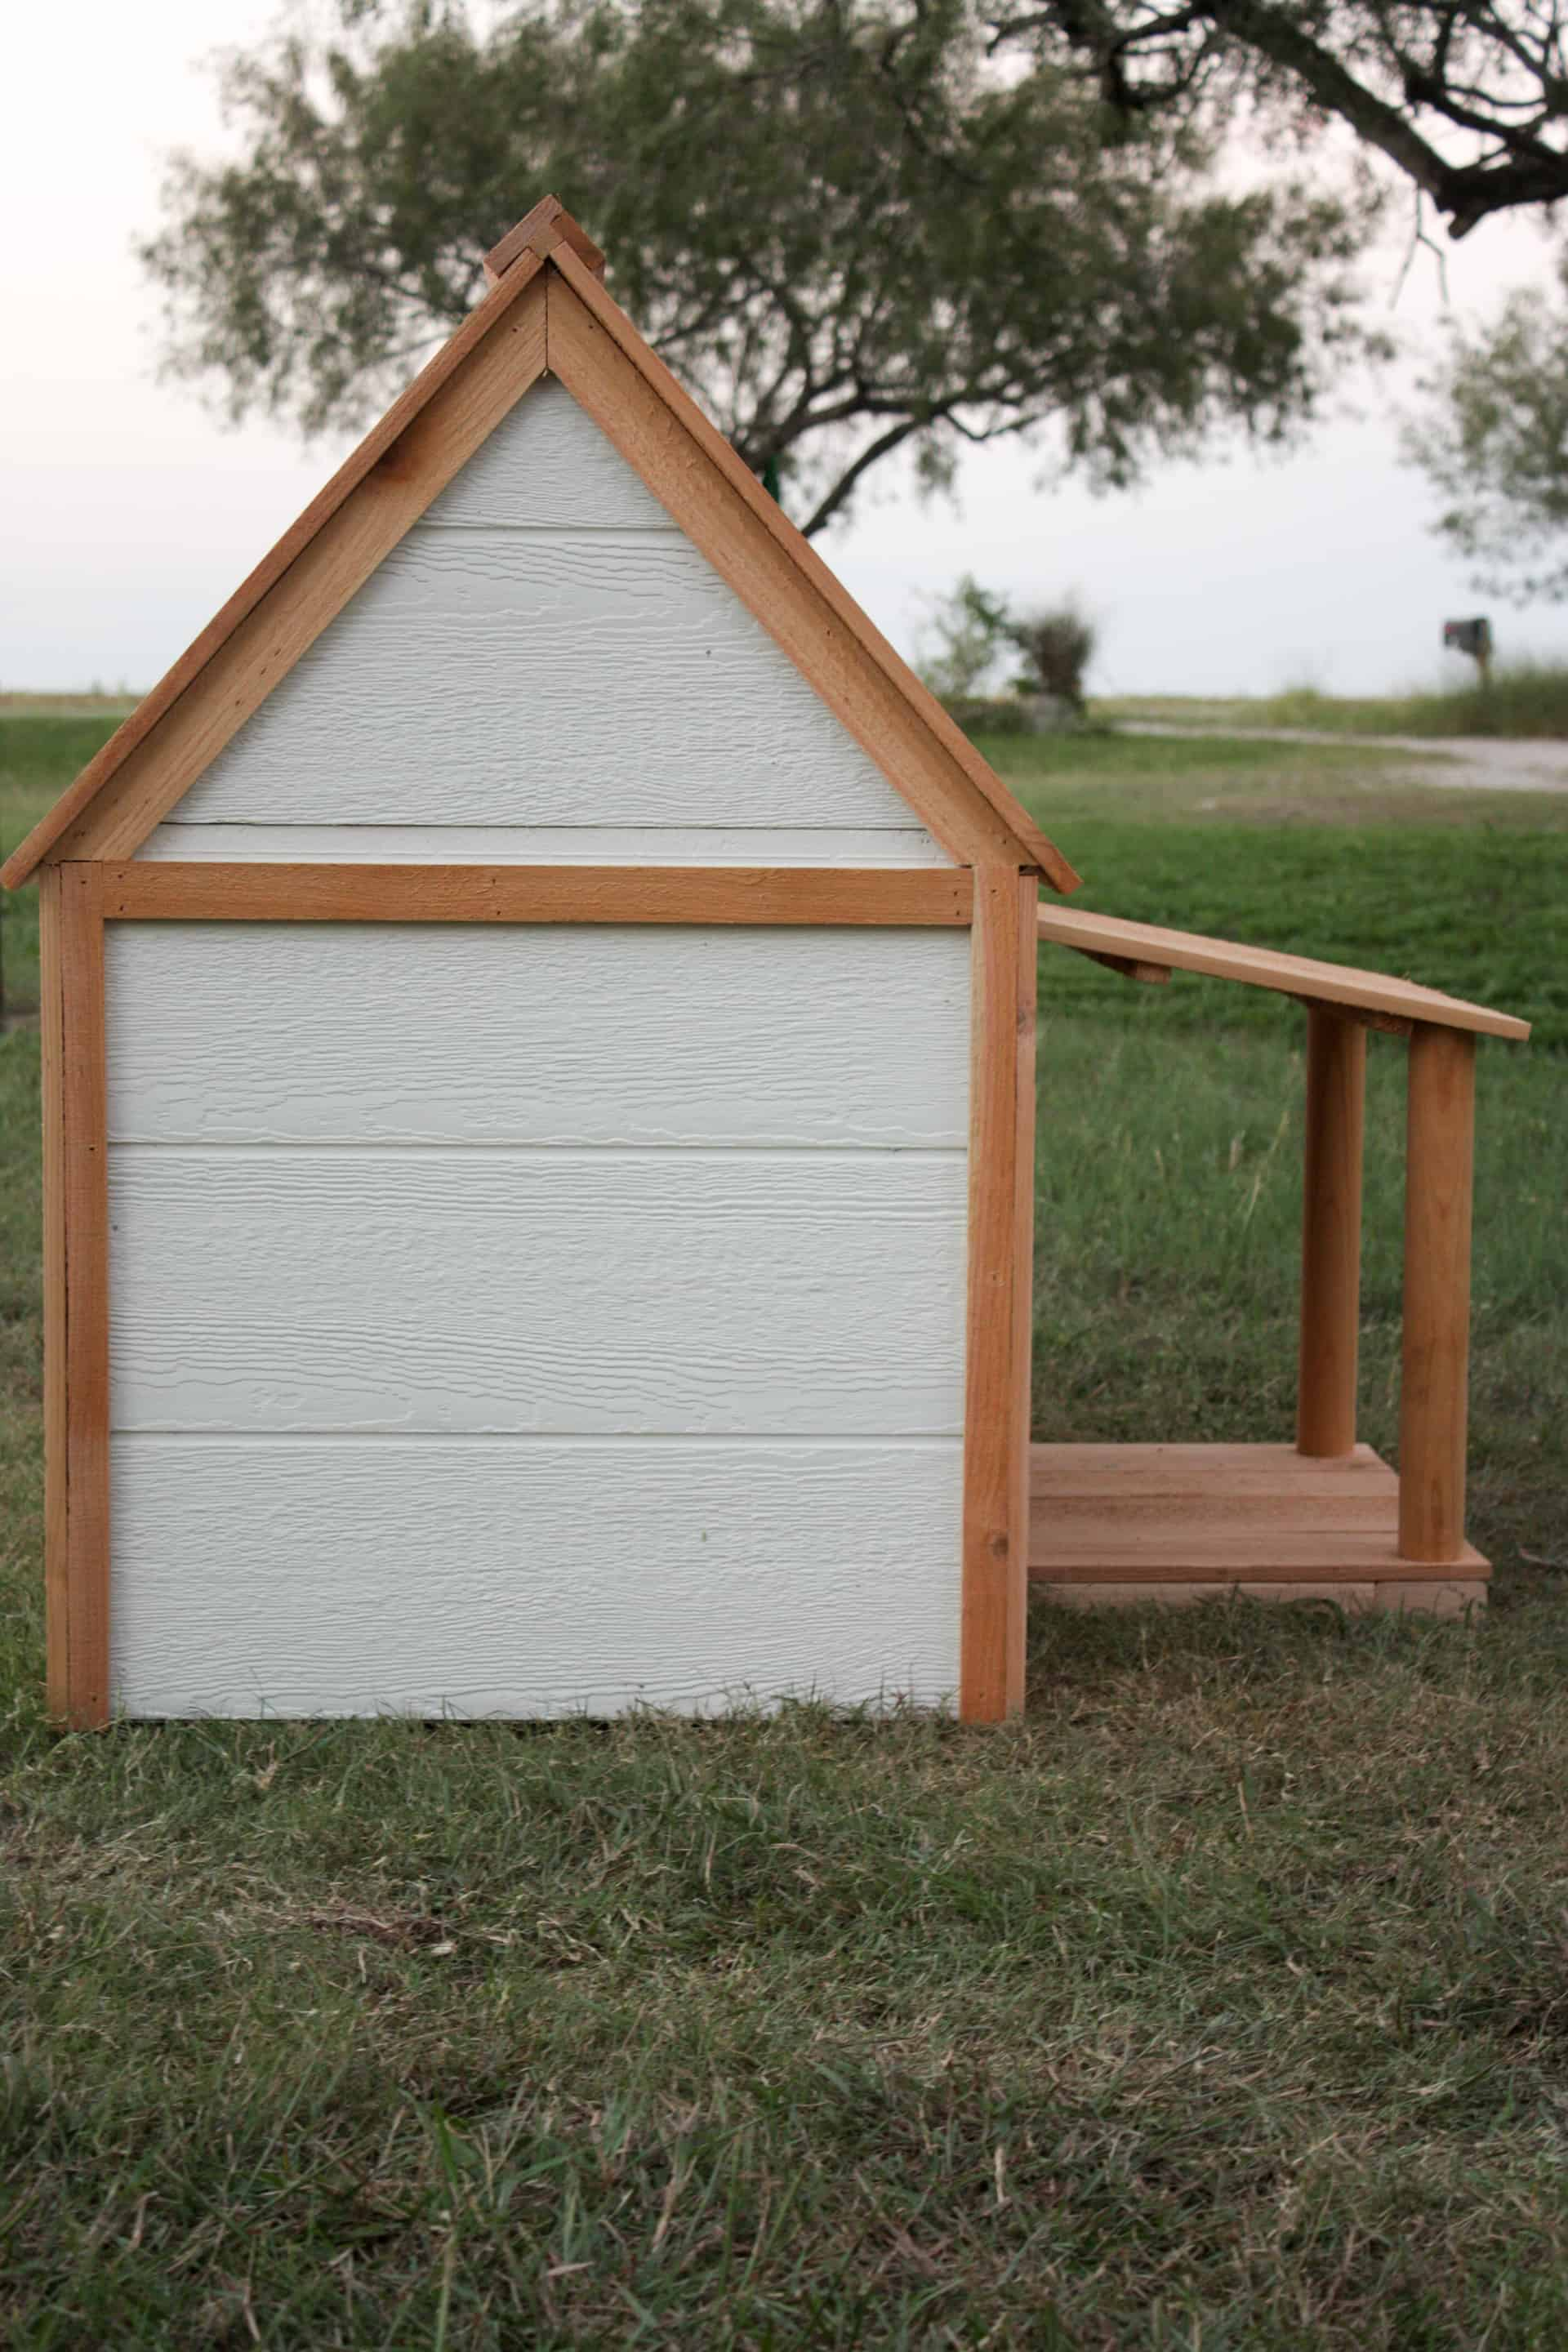 DIY Doghouse - side view of the doghouse